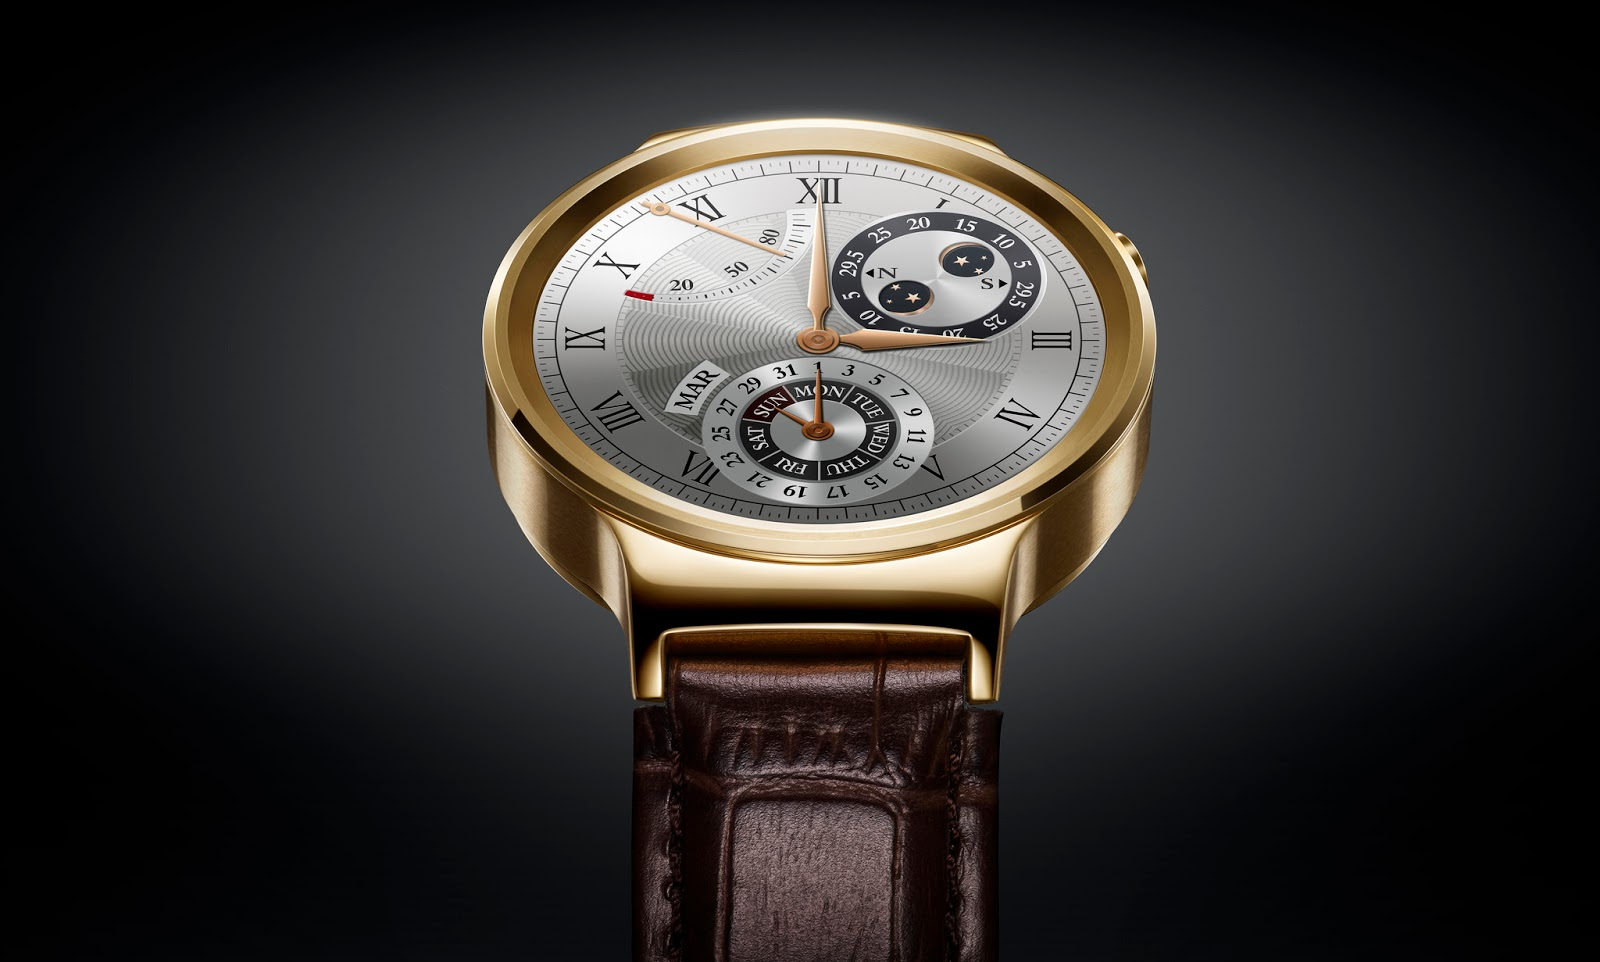 HUAWAI WATCH - AUSSEN ZEITLOSES DESIGN, INNEN SMART